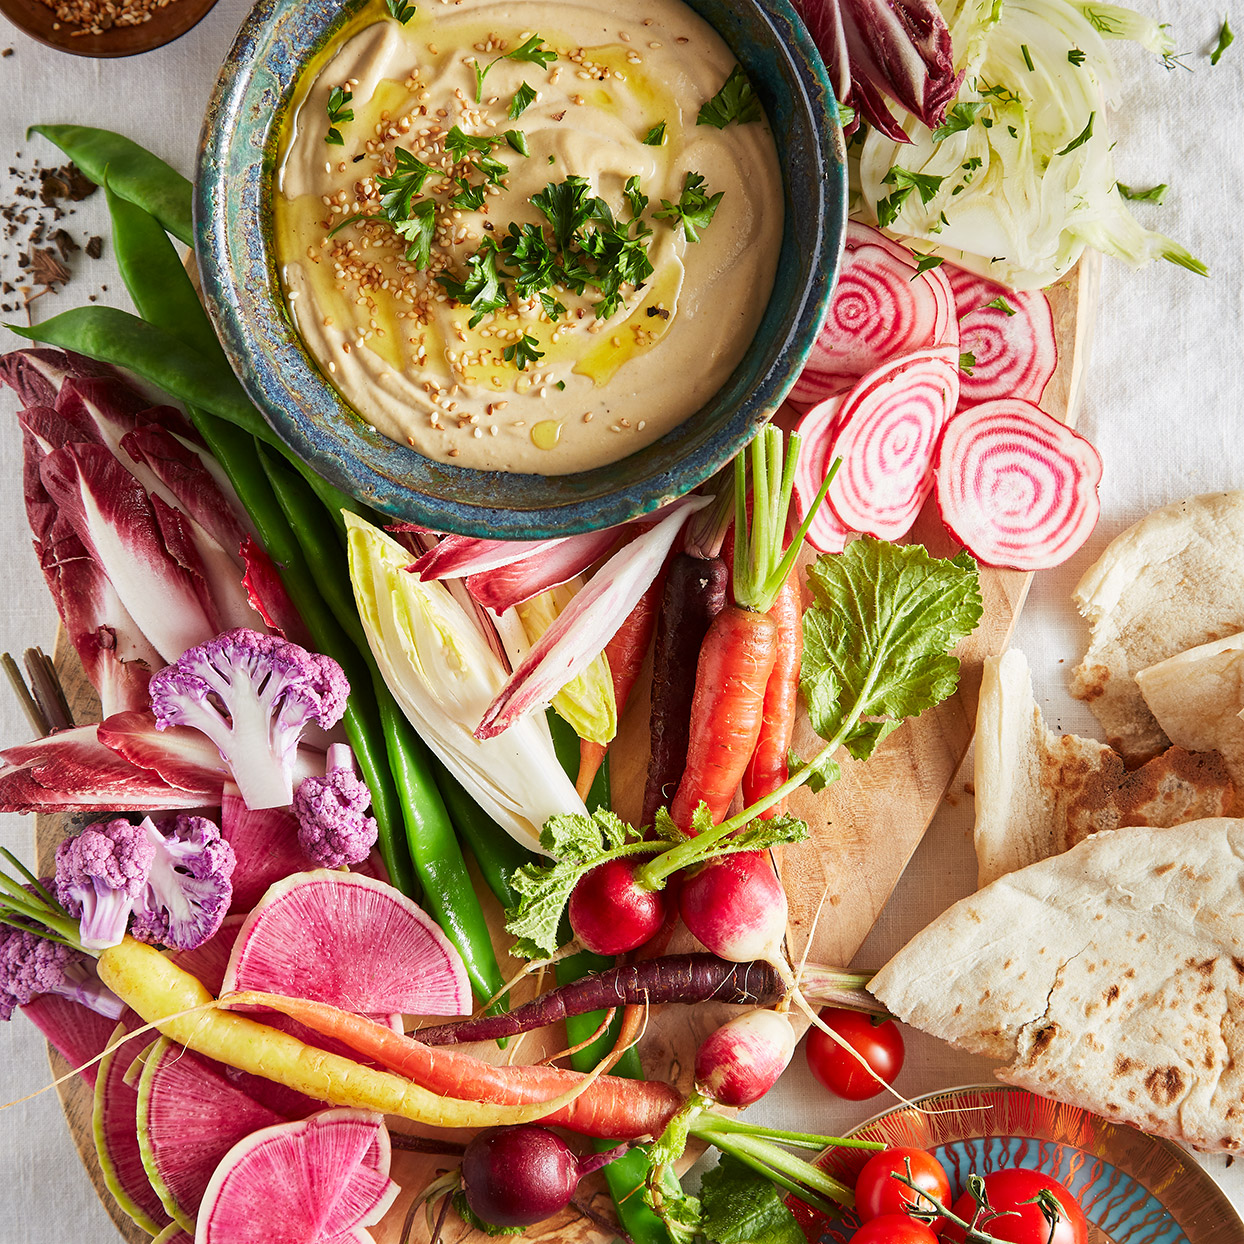 Super creamy with the nutty flavor of sesame seeds, this homemade tahini sauce recipe is a popular way to begin a meal in Cyprus. Serve with crudités and pita. Source: EatingWell Magazine, March 2020